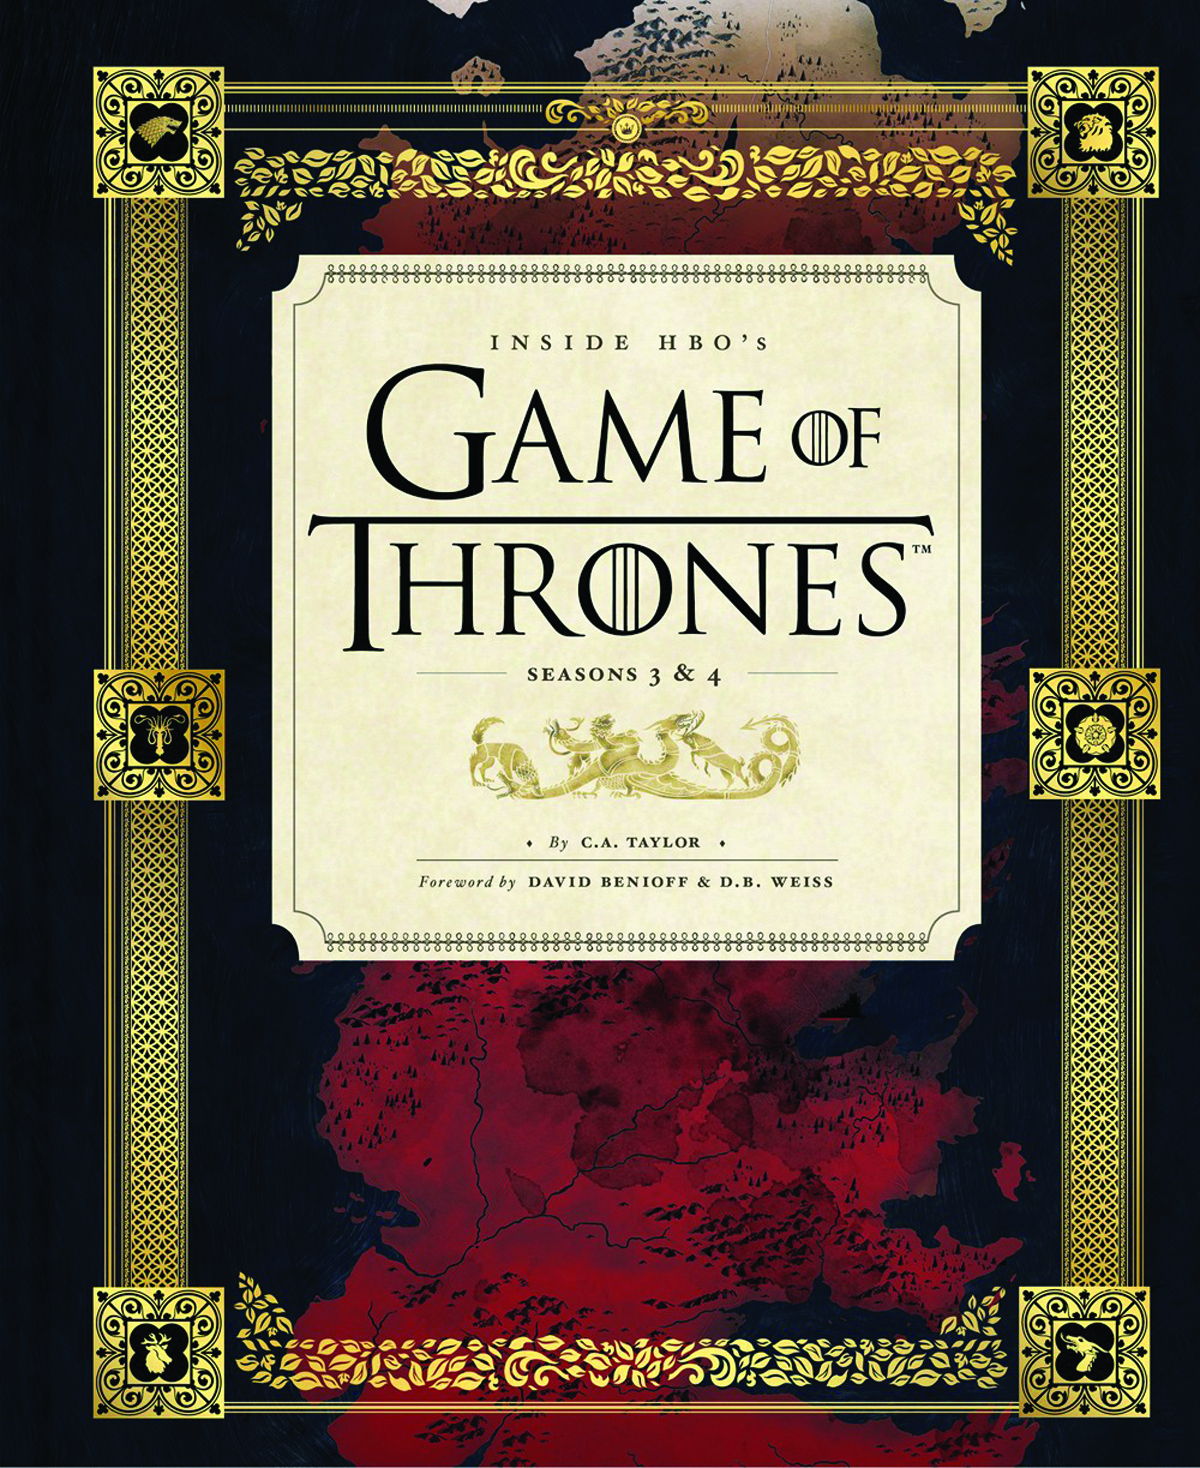 INSIDE HBOS GAME OF THRONES HC VOL 01 SEASON 3 & 4